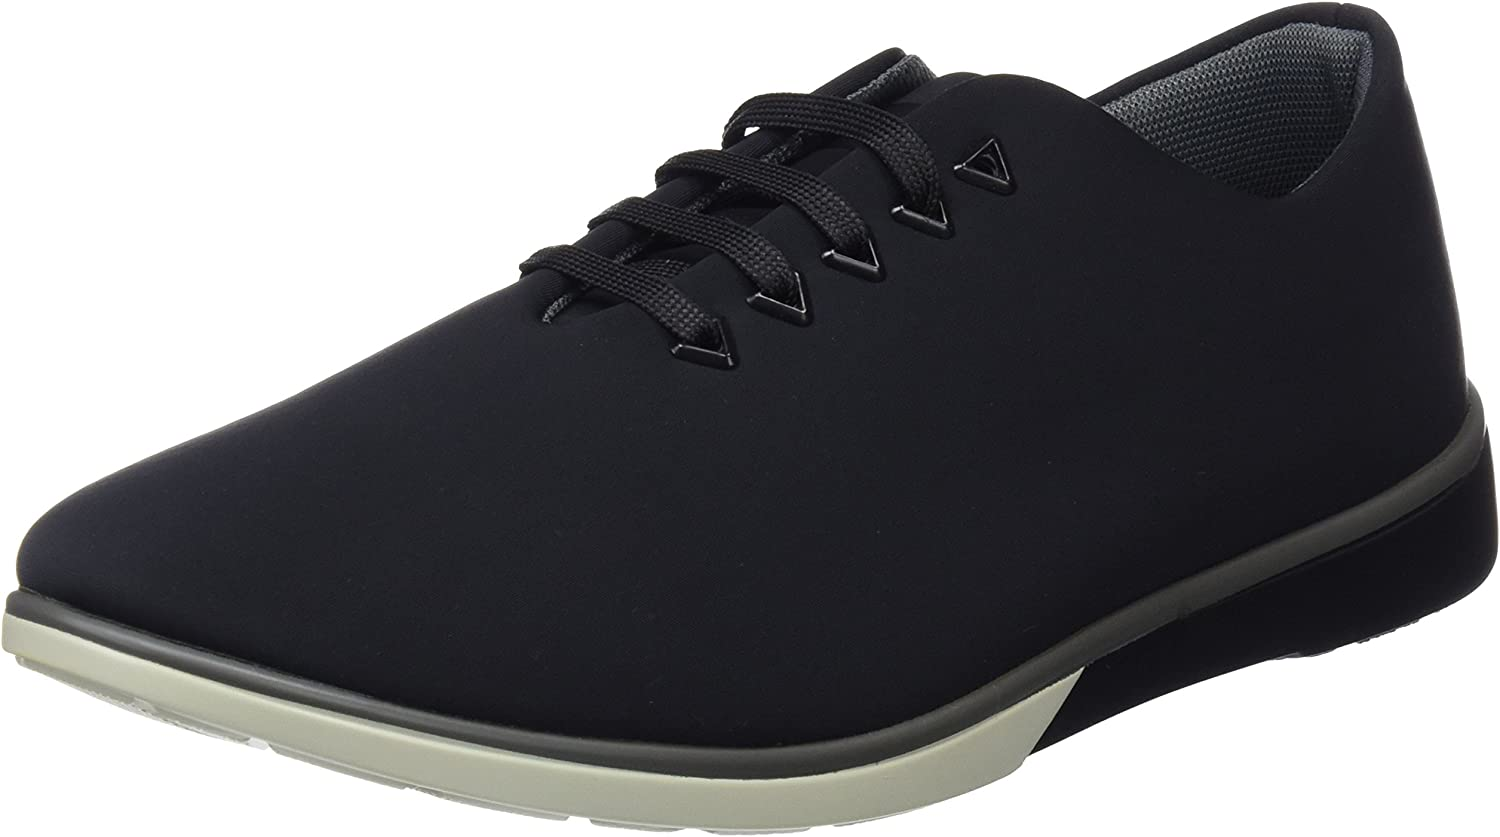 Muroexe Atom Eternal Black, Zapatos de Cordones Derby Unisex Adulto